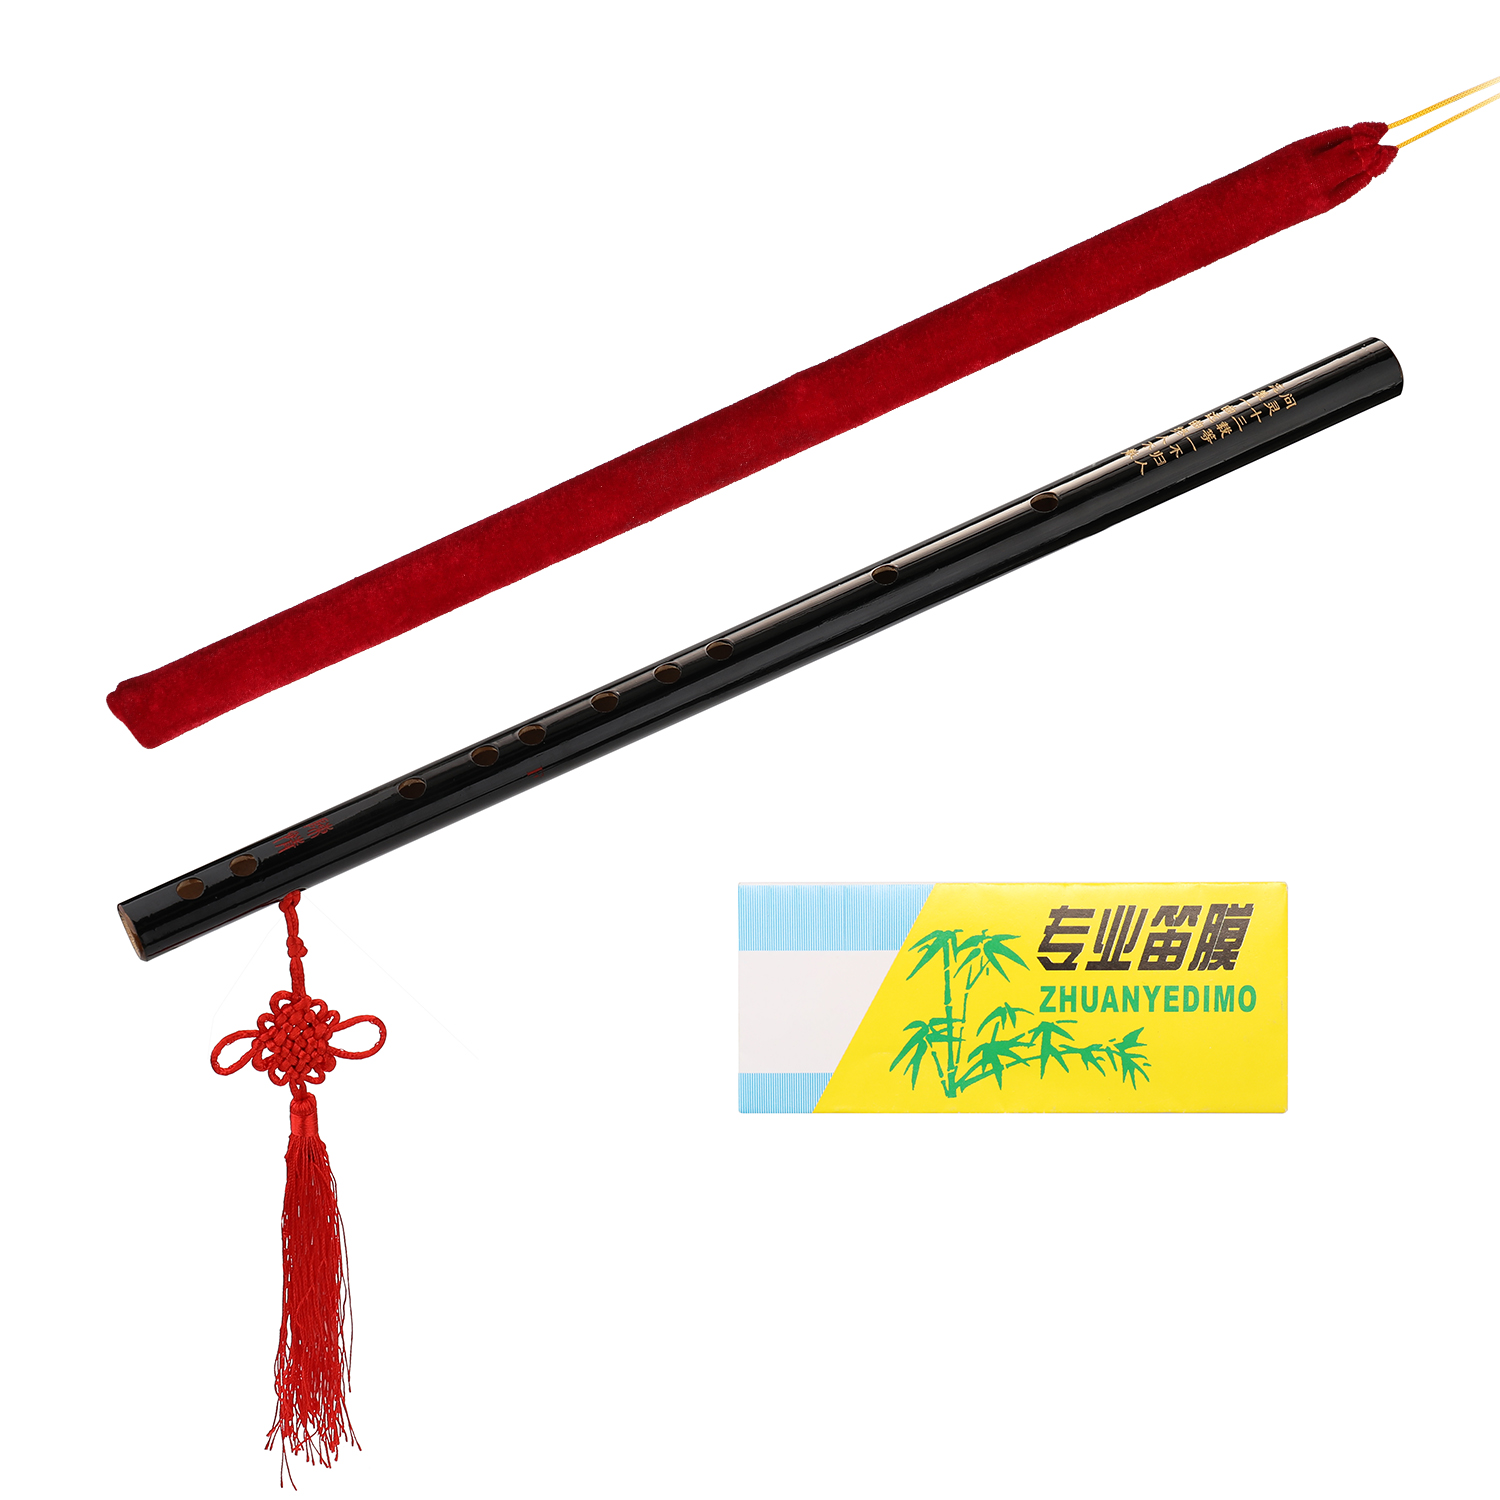 Bamboo Flute Woodwind Musical Instrument Beginner Learner Student Practice Training Traditional Handmade Bamboo Flutes Flute Aliexpress